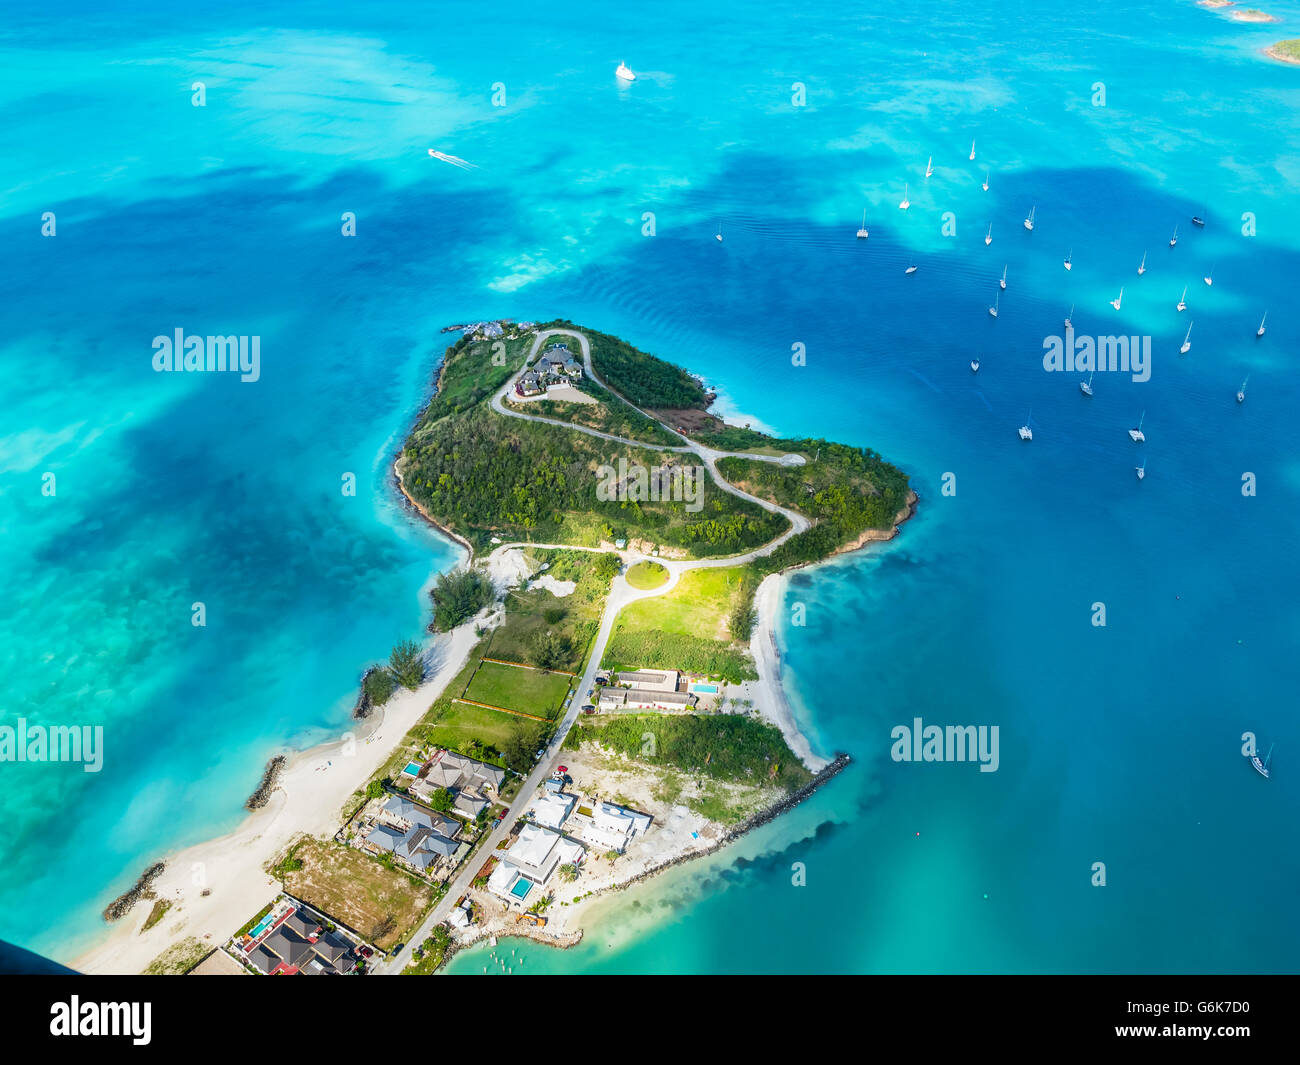 West Indies, Antigua and Barbuda, Antigua, aerial view, Jolly Harbour - Stock Image